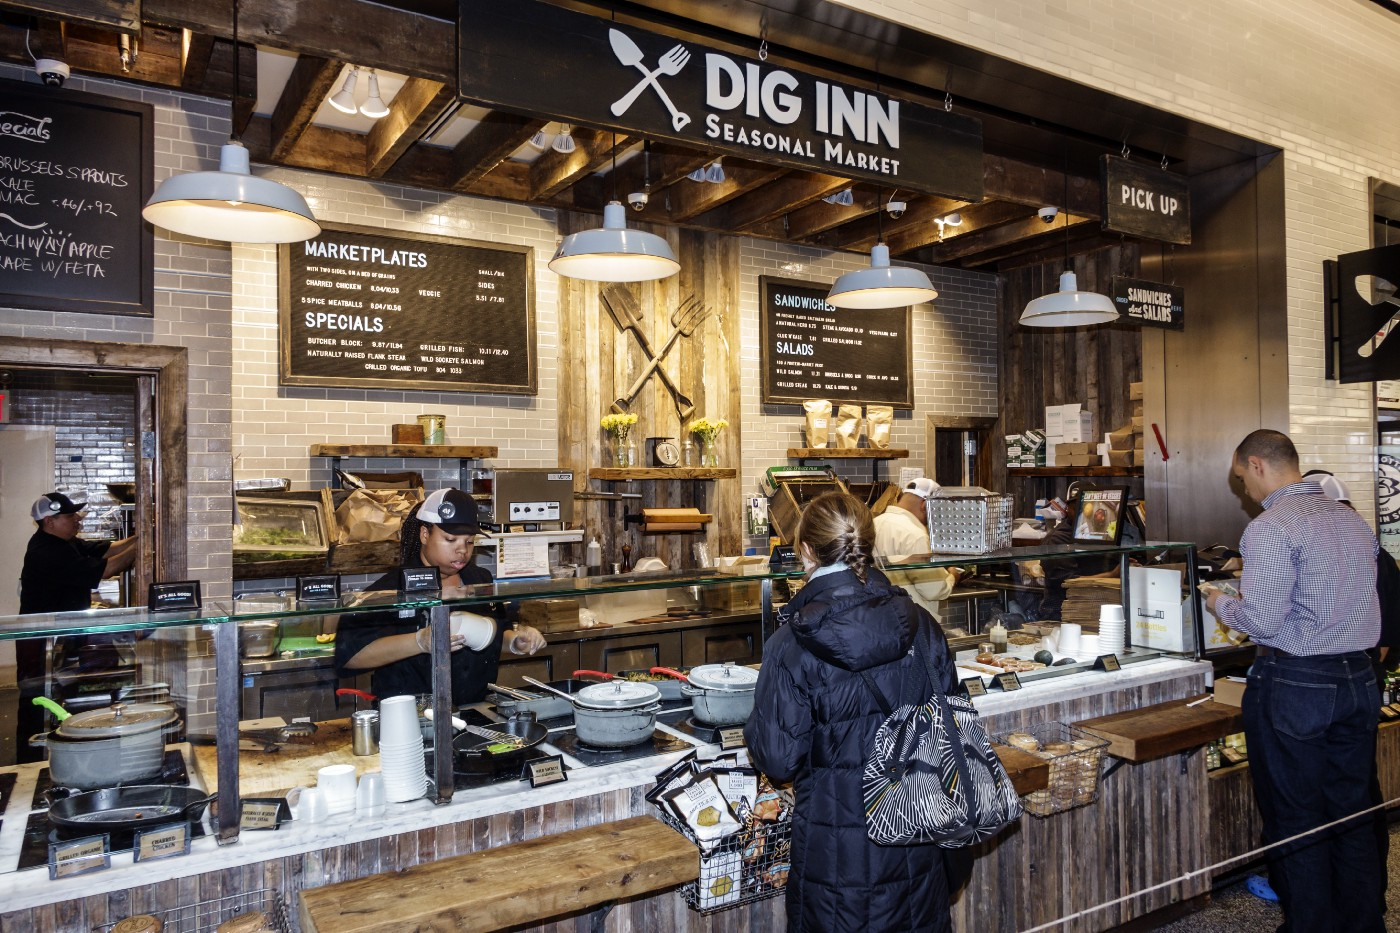 Dig Inn Seasonal Market counter in a shopping center at Brookfield Place.